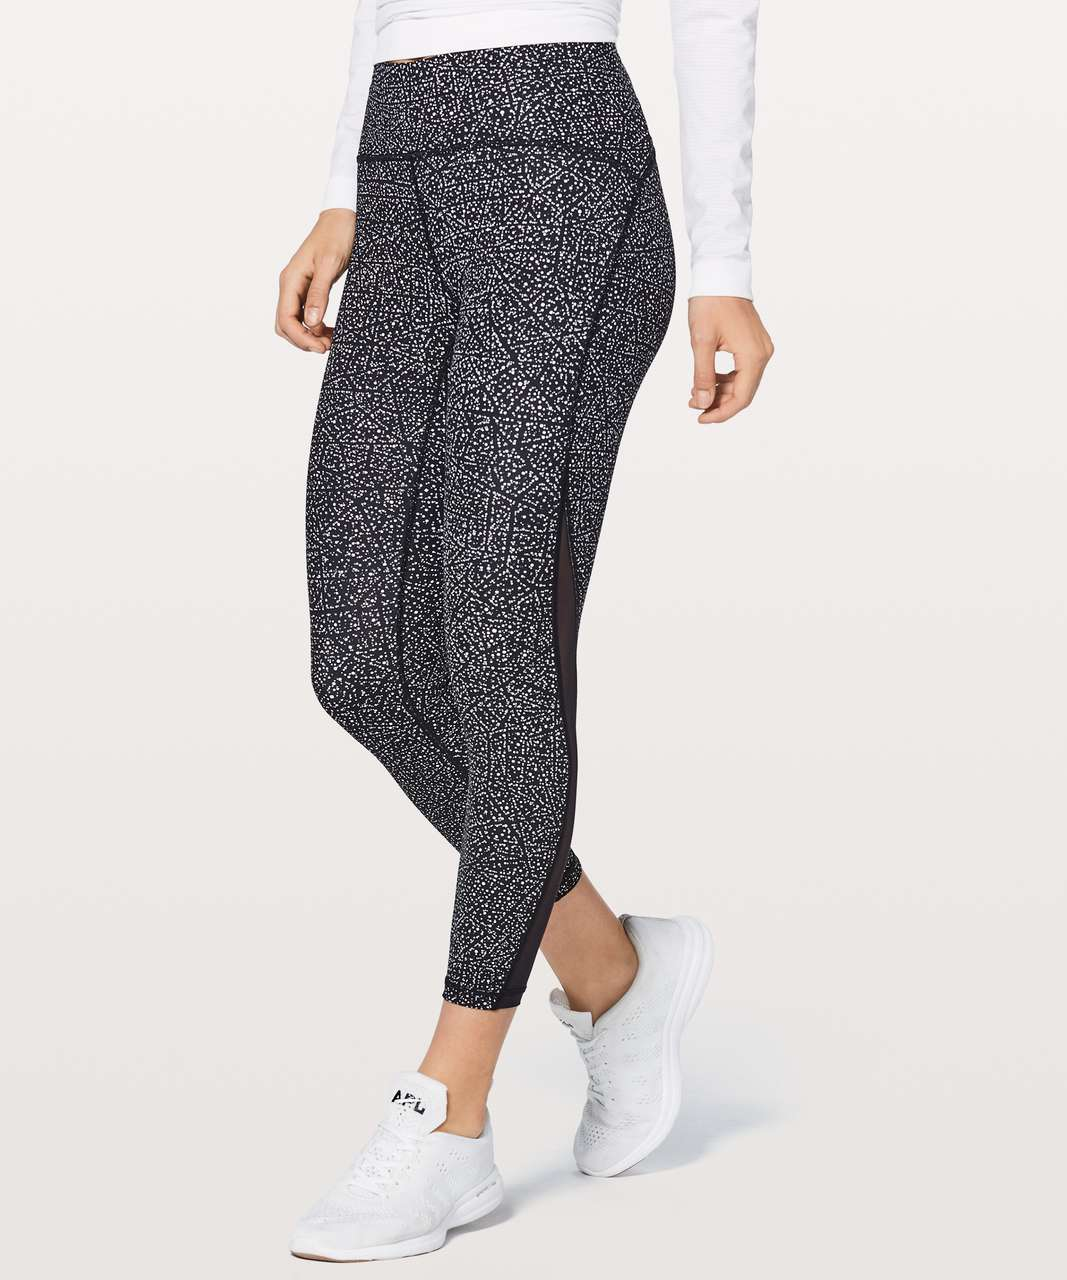 "Lululemon Train Times 7/8 Pant 25"" - Night View White Black / Black"